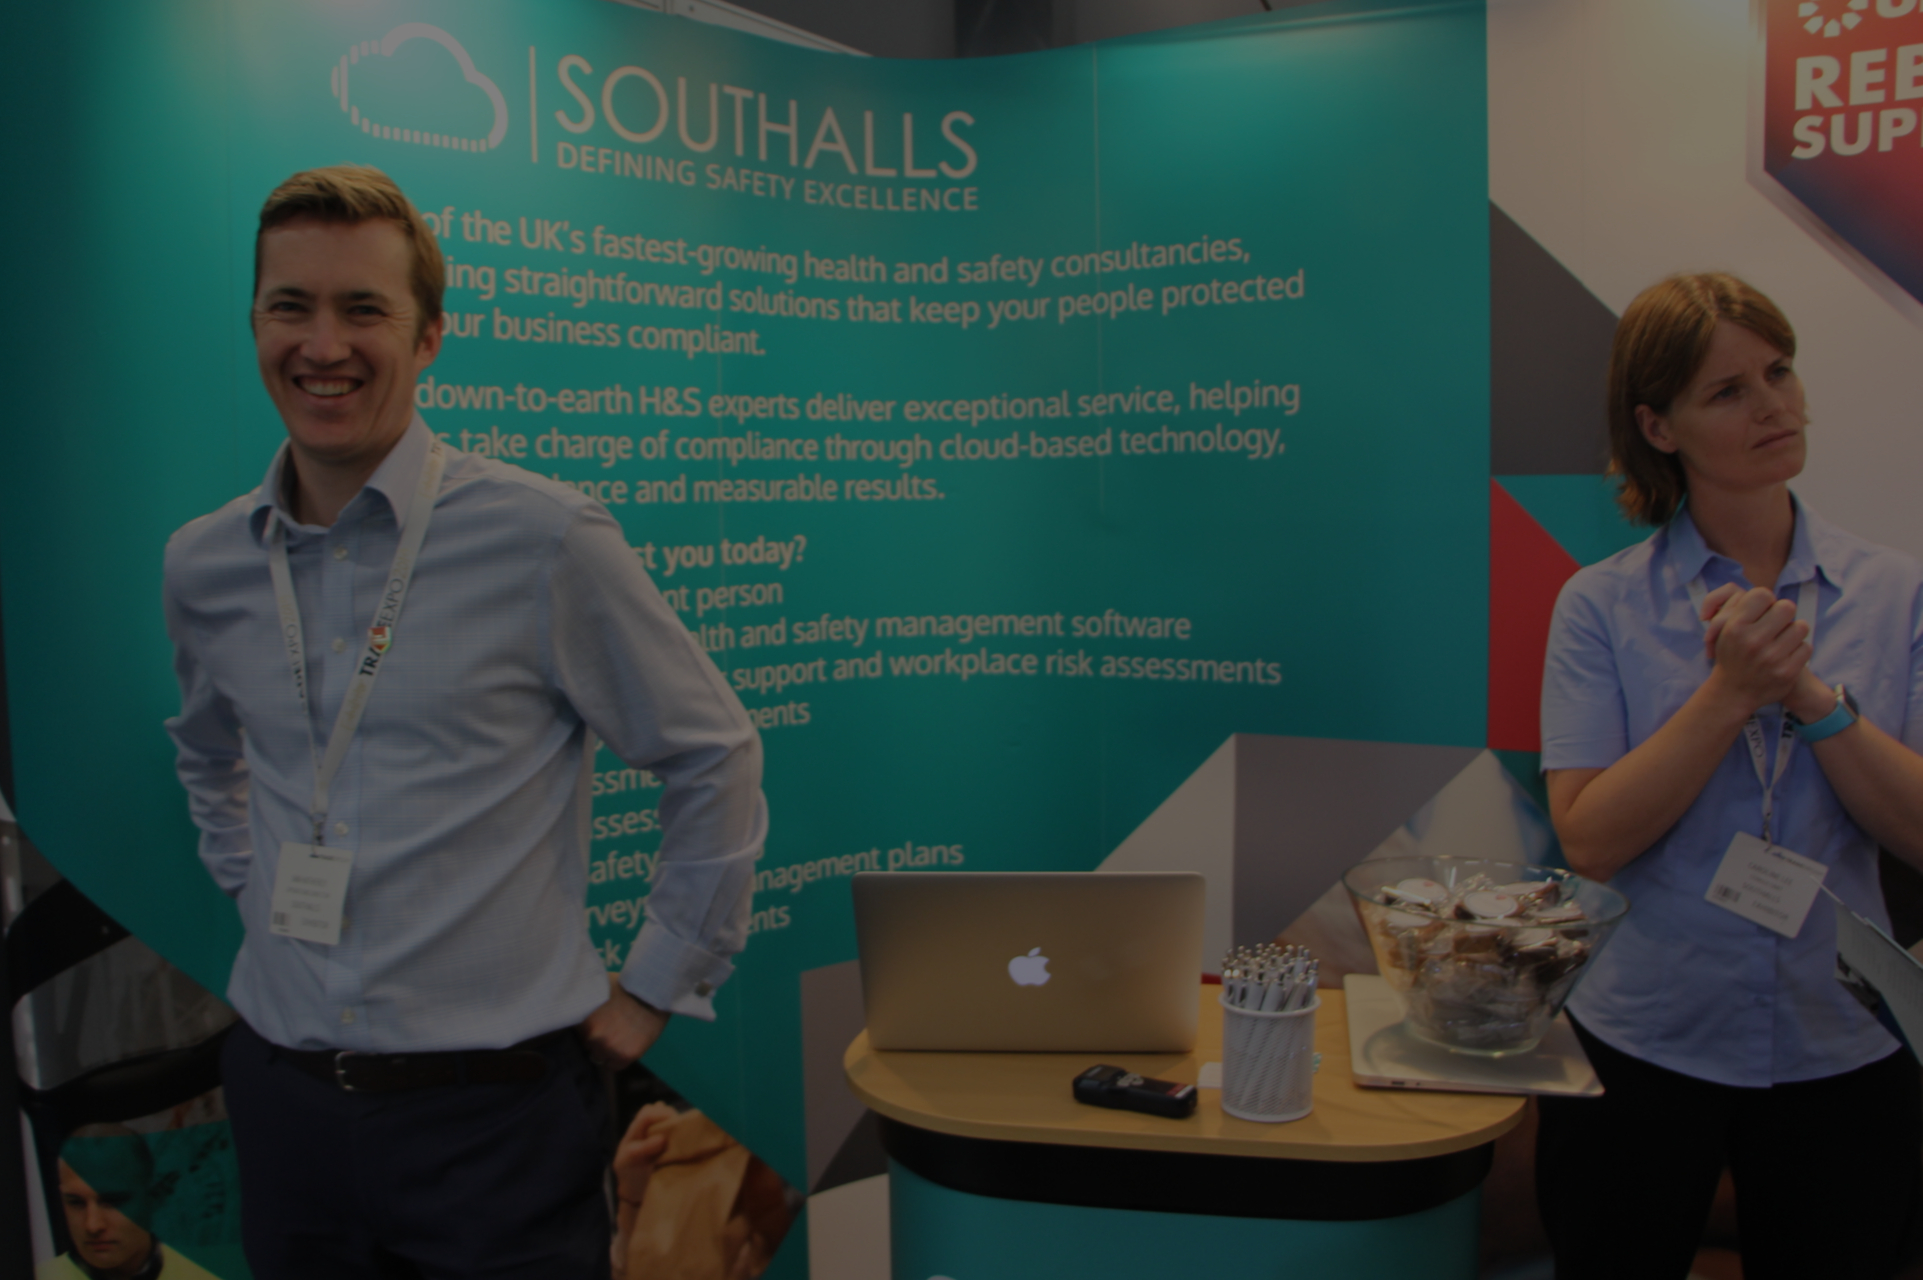 Southalls Team At The Trade Expo'19